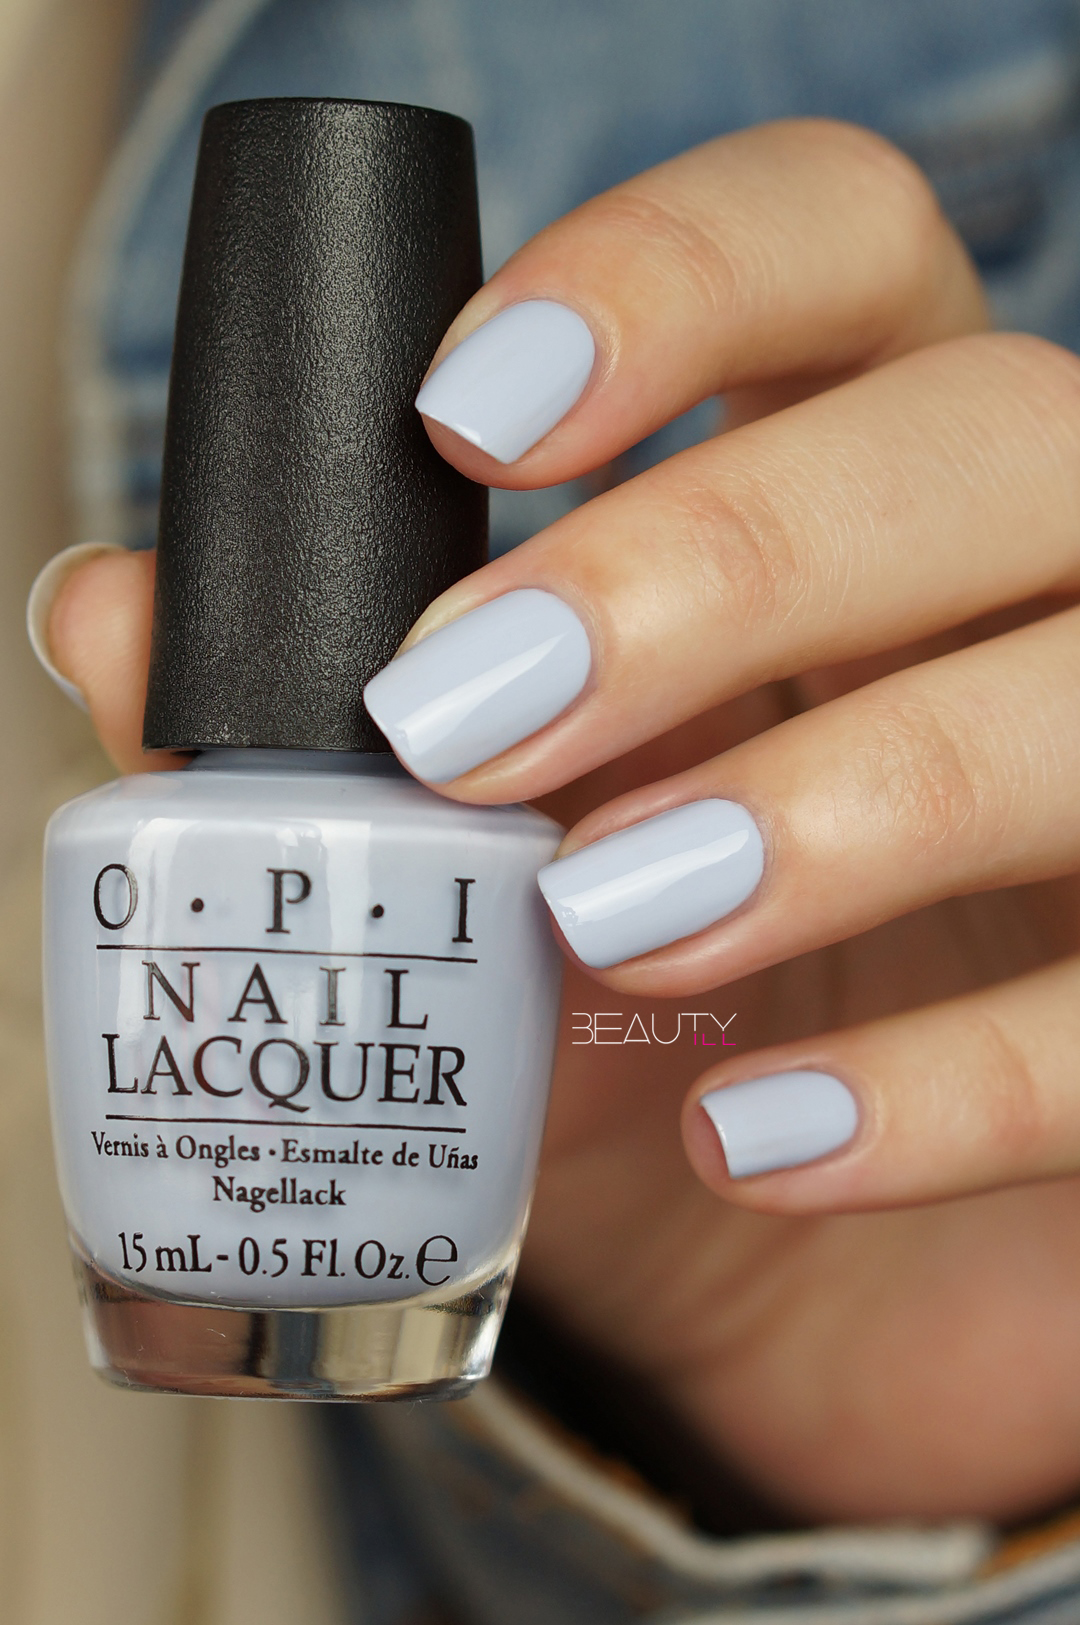 Opi I Am What I Amethyst 3 Beautyill